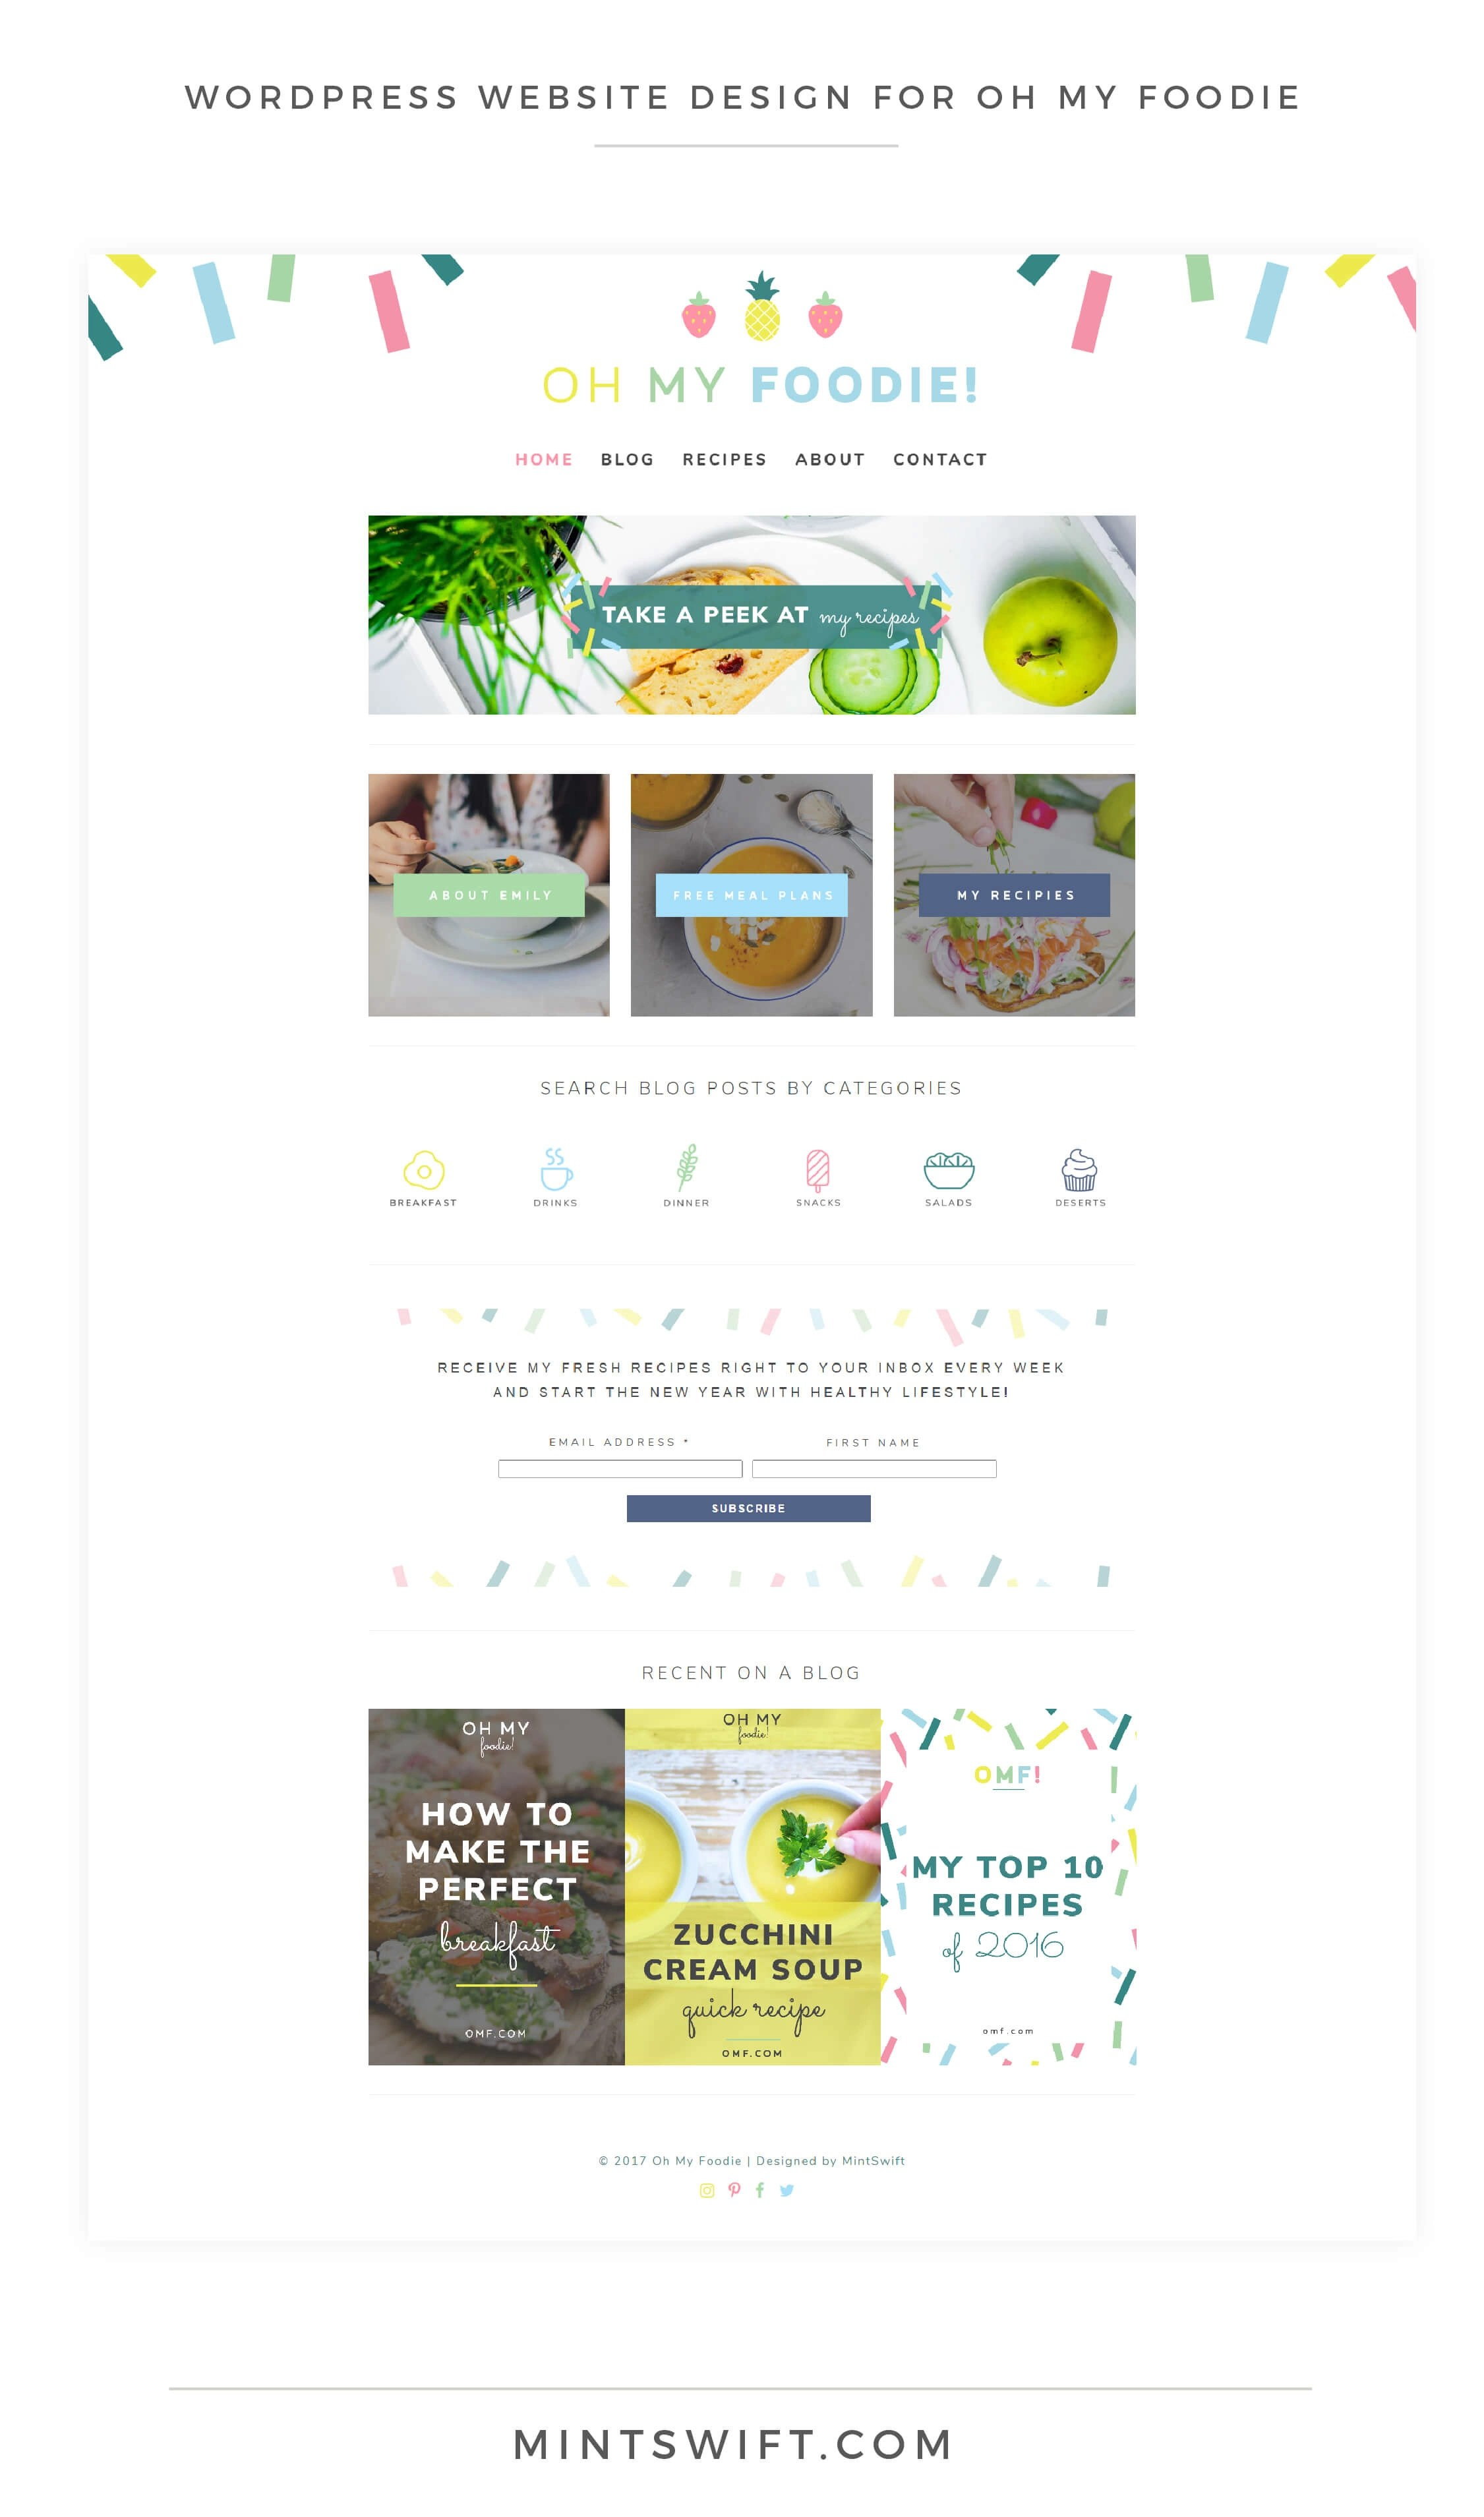 Oh My Foodie - WordPress Website Design - MintSwift